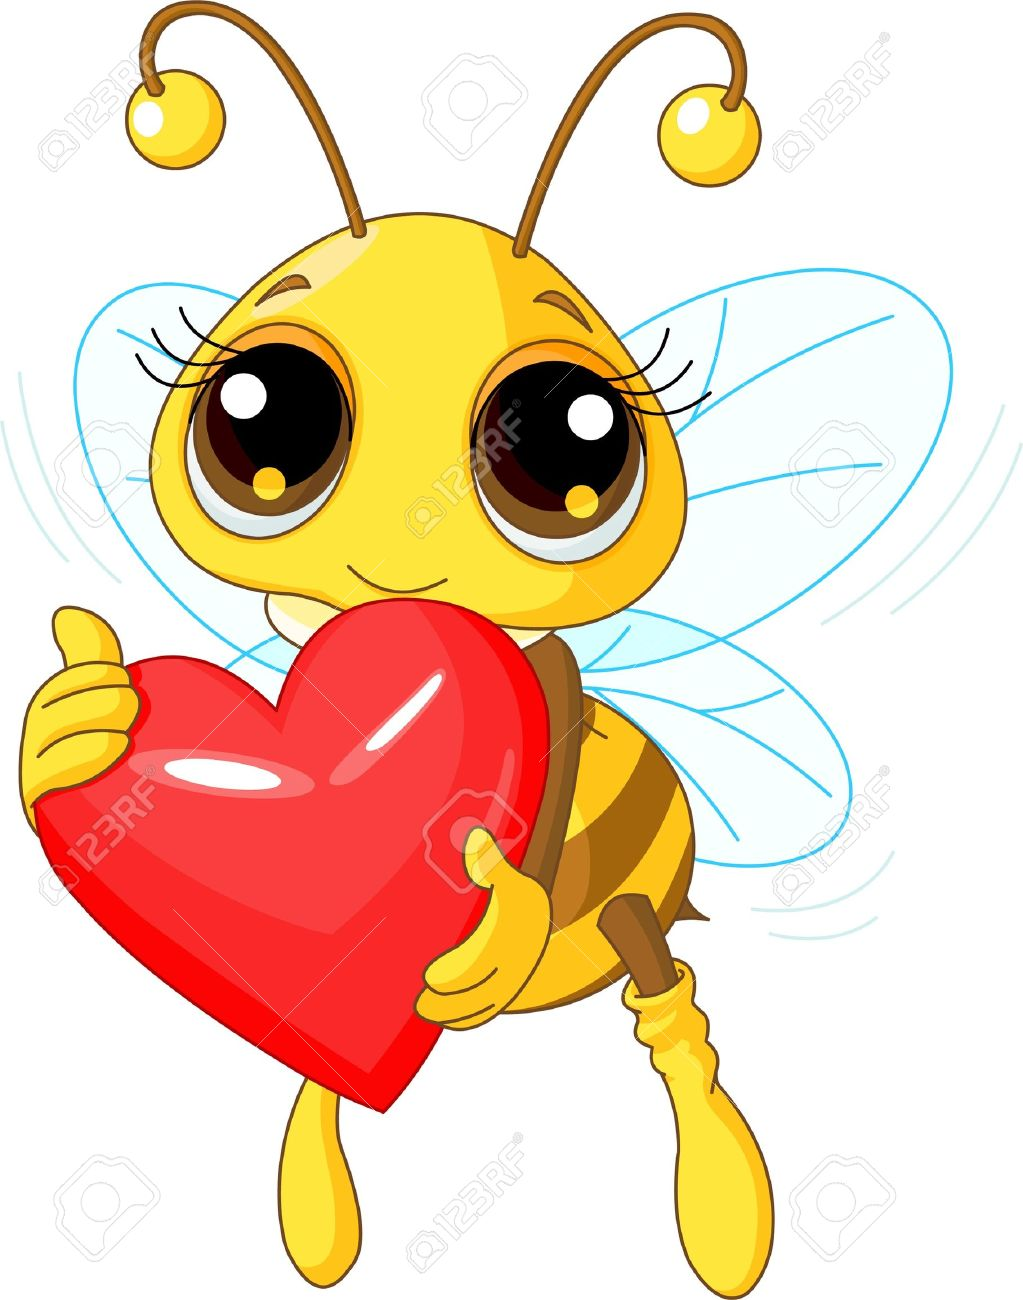 Illustration of a Cute Bee holding Love heart Stock Vector - 8525083